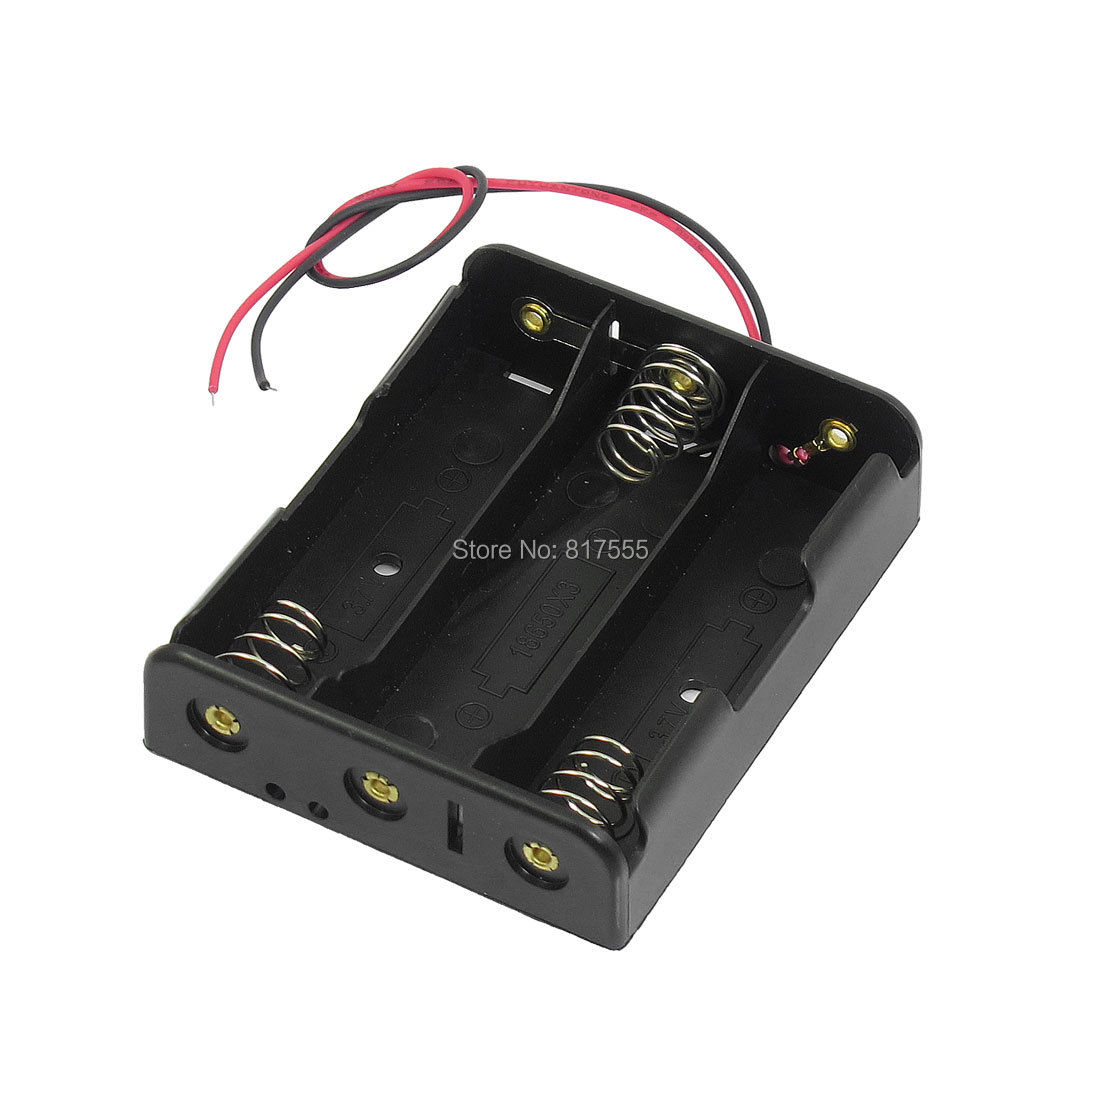 Гаджет  Series Black Plastic 3.7V Flat Tip Battery Holder Case for 3 x 18650 Batteries None Бытовая электроника